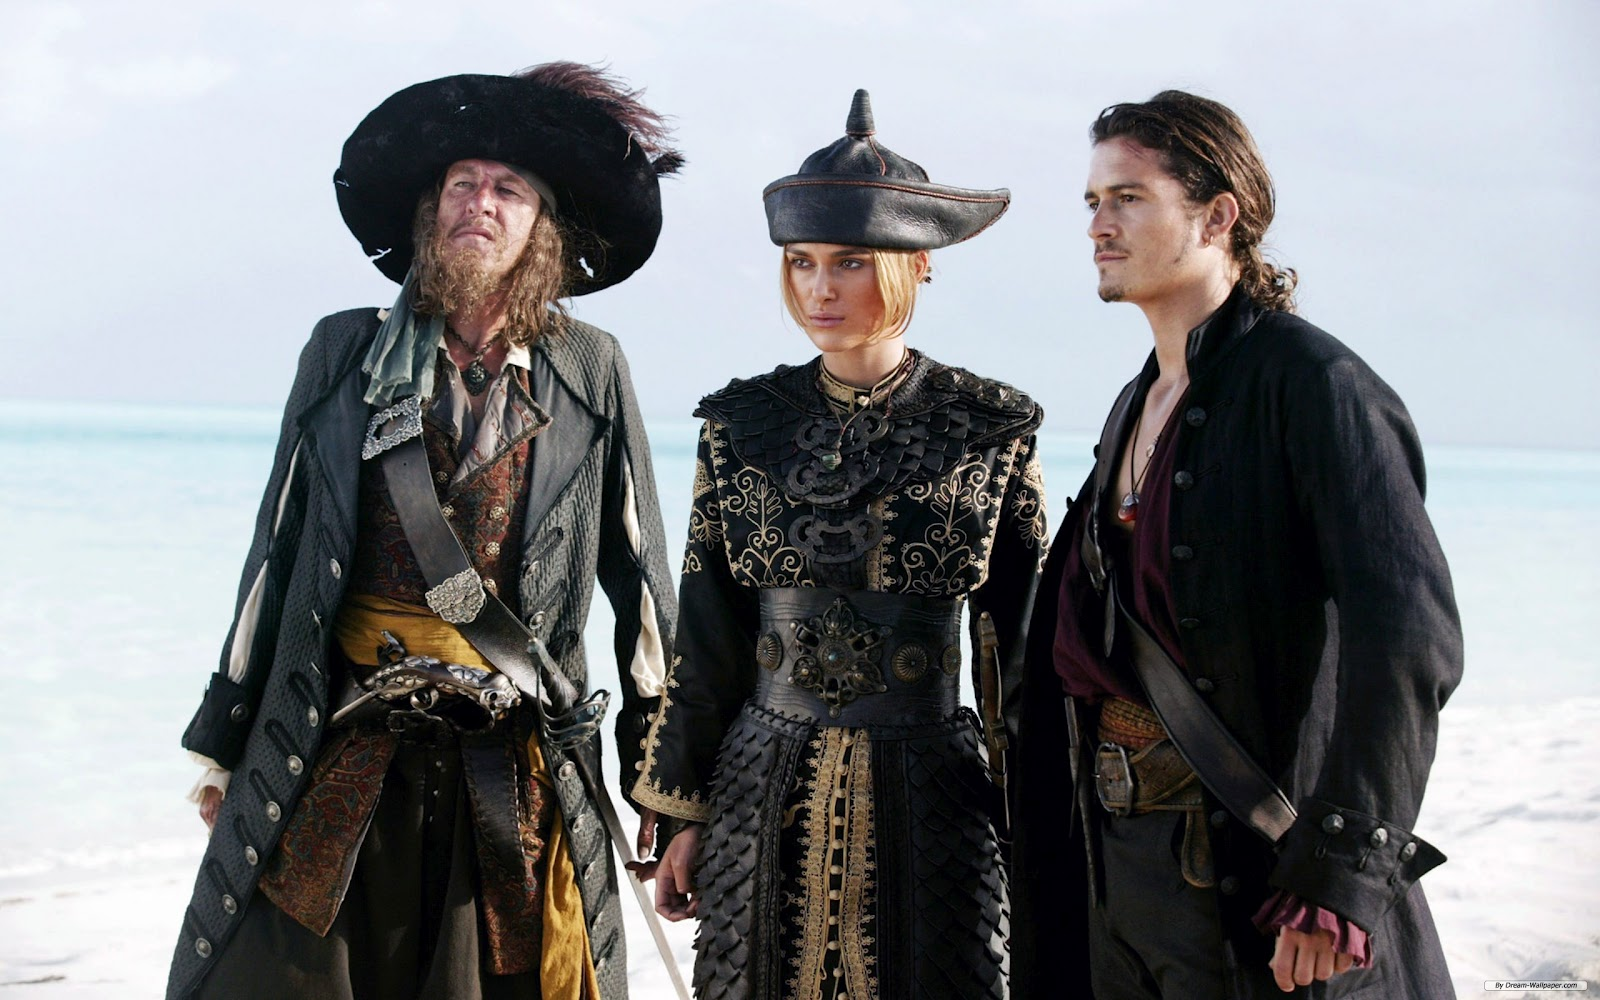 http://2.bp.blogspot.com/-ulZGdR01l0Y/Ty6VIueahXI/AAAAAAAAA-8/DCqeTpRpXS0/s1600/Pirates+of+The+Caribbean+(16).jpg